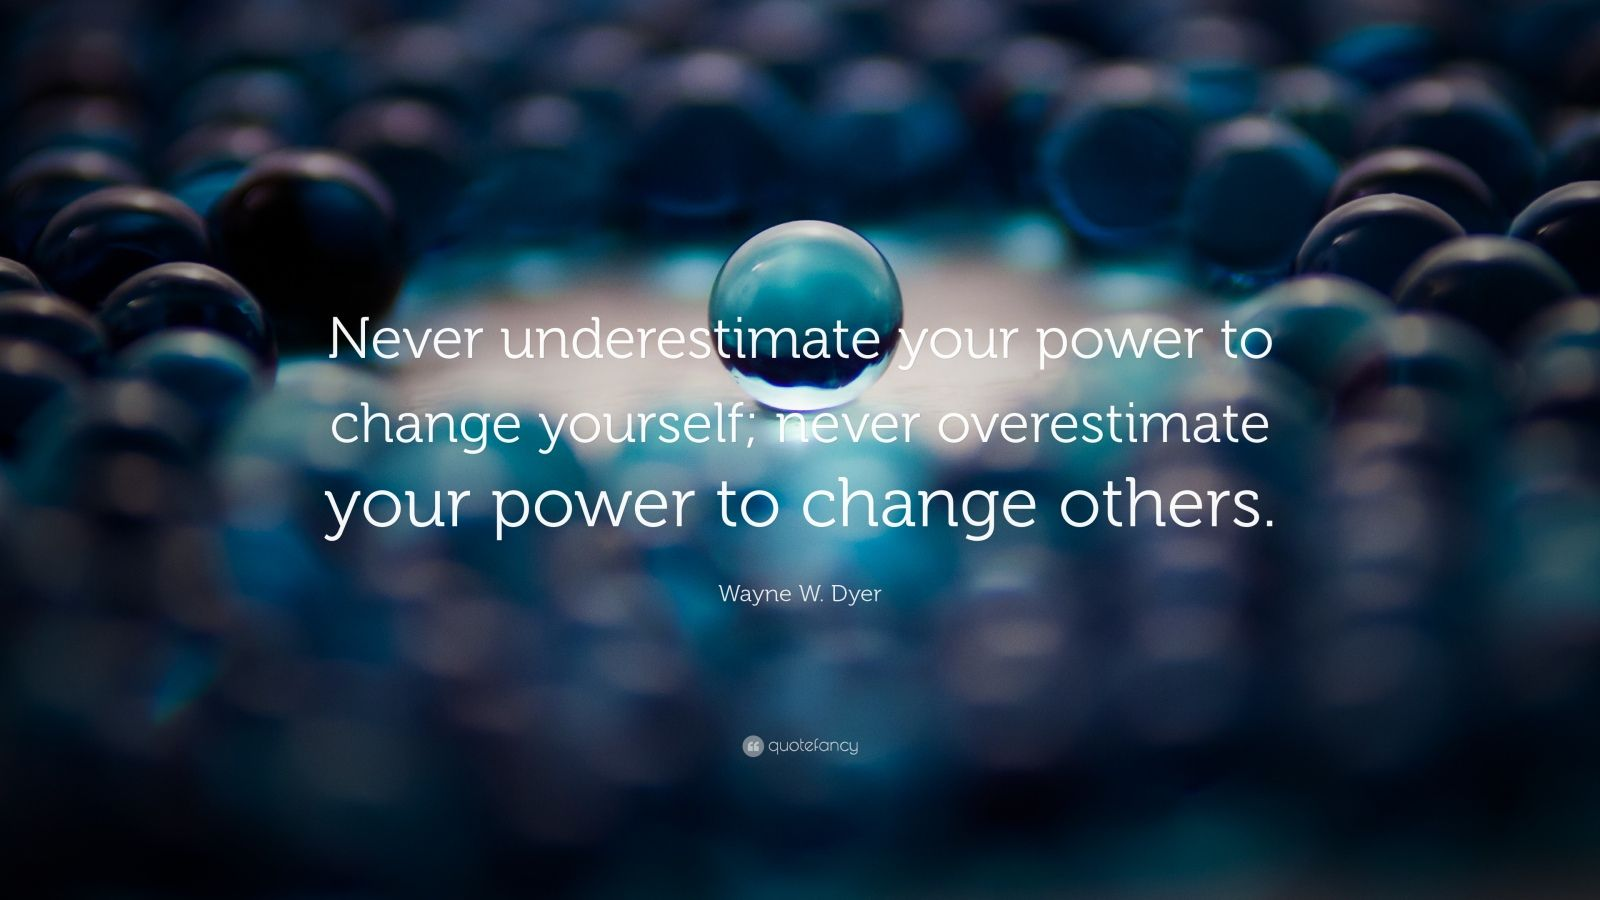 """Wayne W. Dyer Quote: """"Never underestimate your power to change yourself; never overestimate your power to change others."""""""